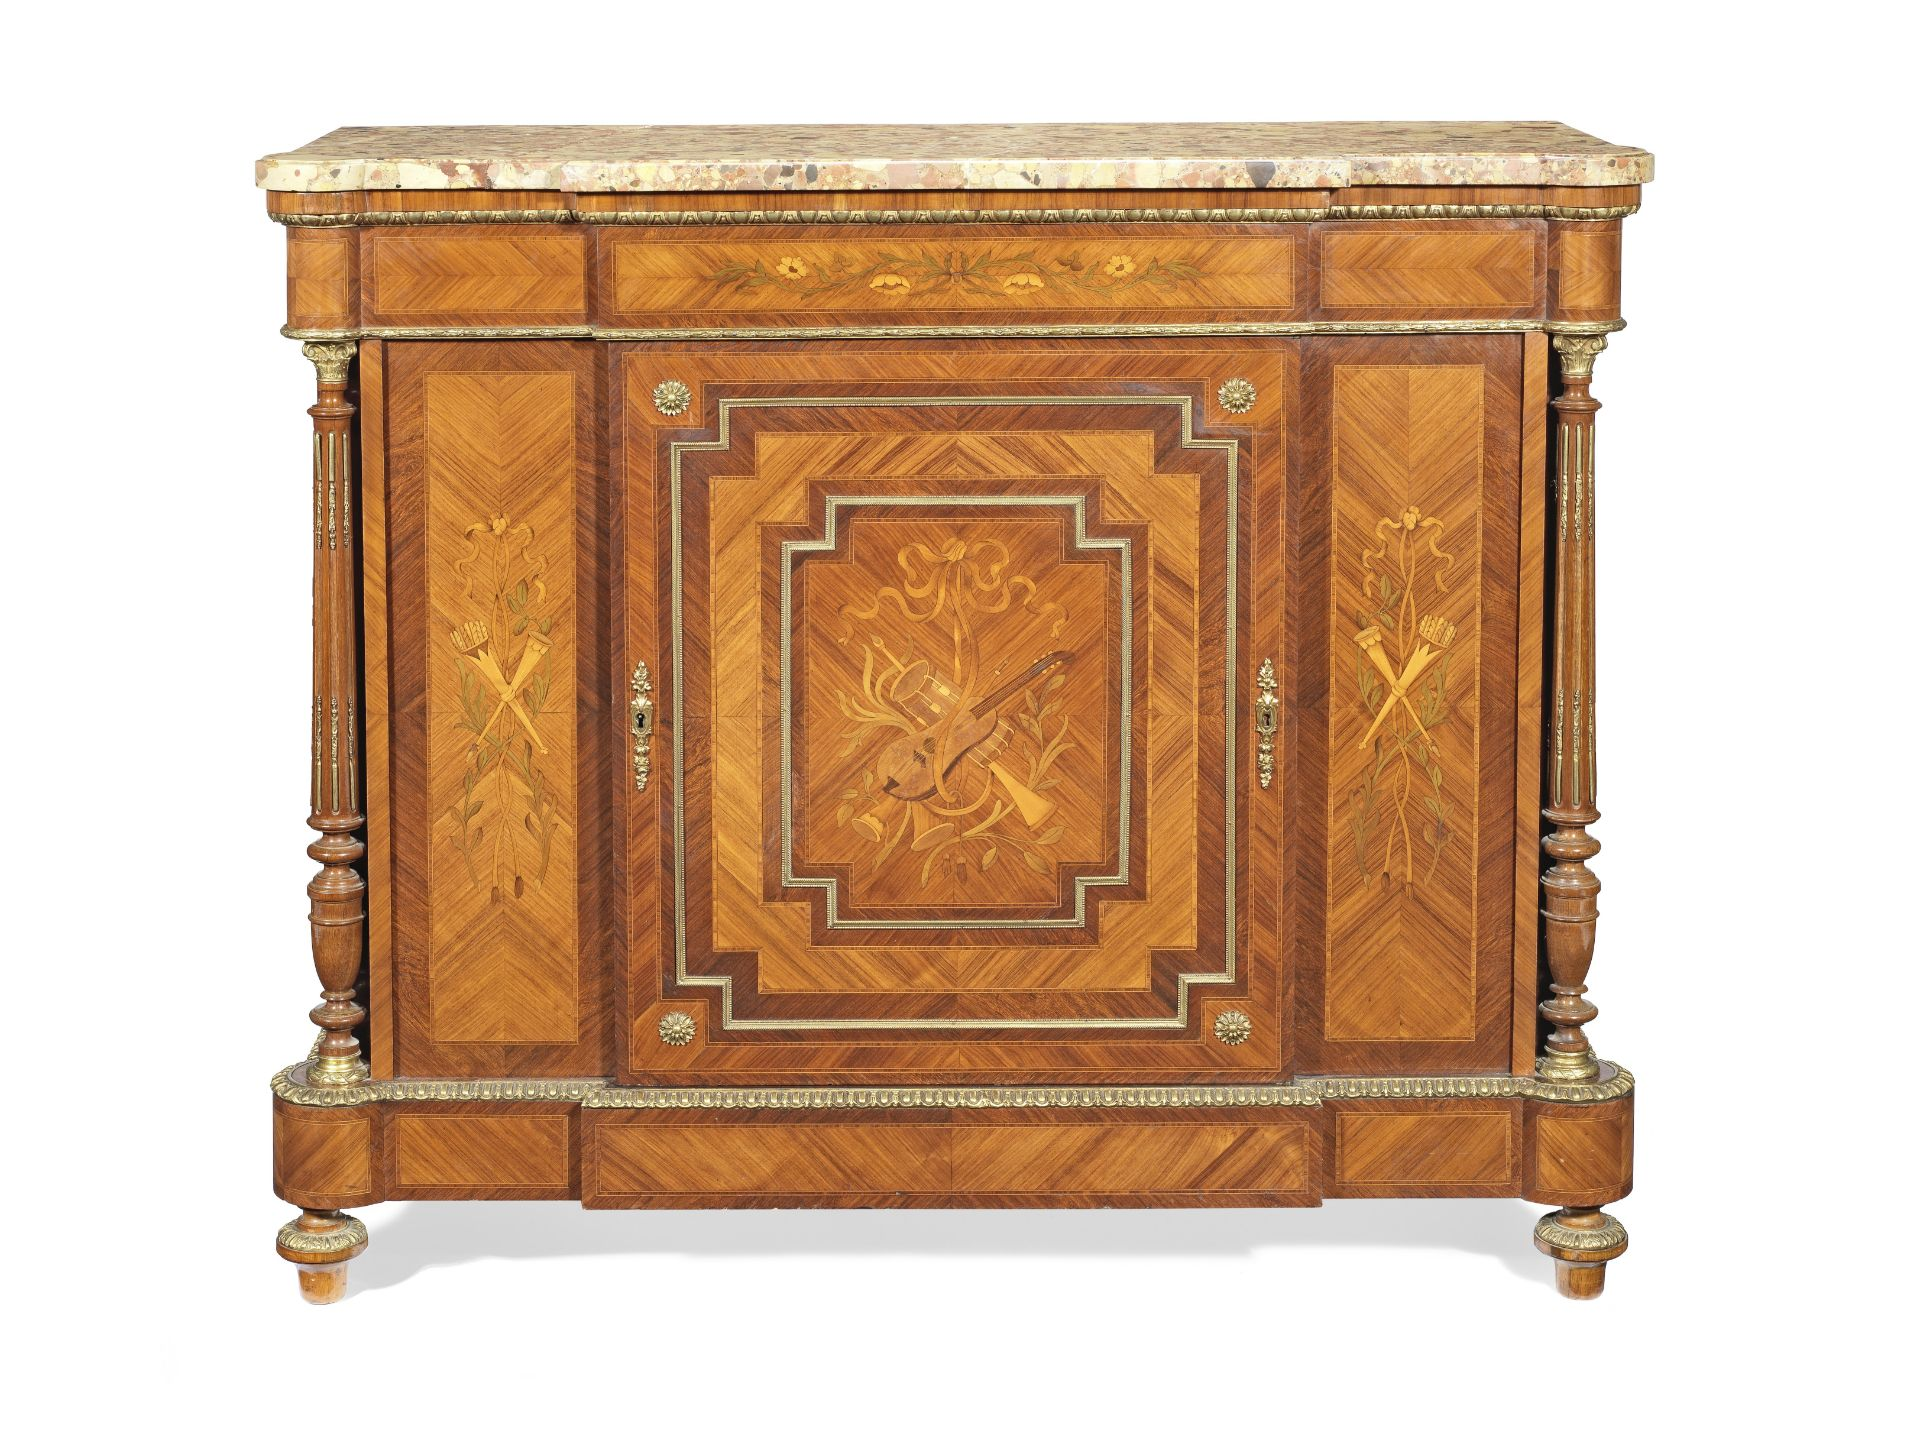 A Napoleon III gilt bronze mounted tulipwood, rosewood and marquetry hauteur d'appui or low cabinet - Image 3 of 3